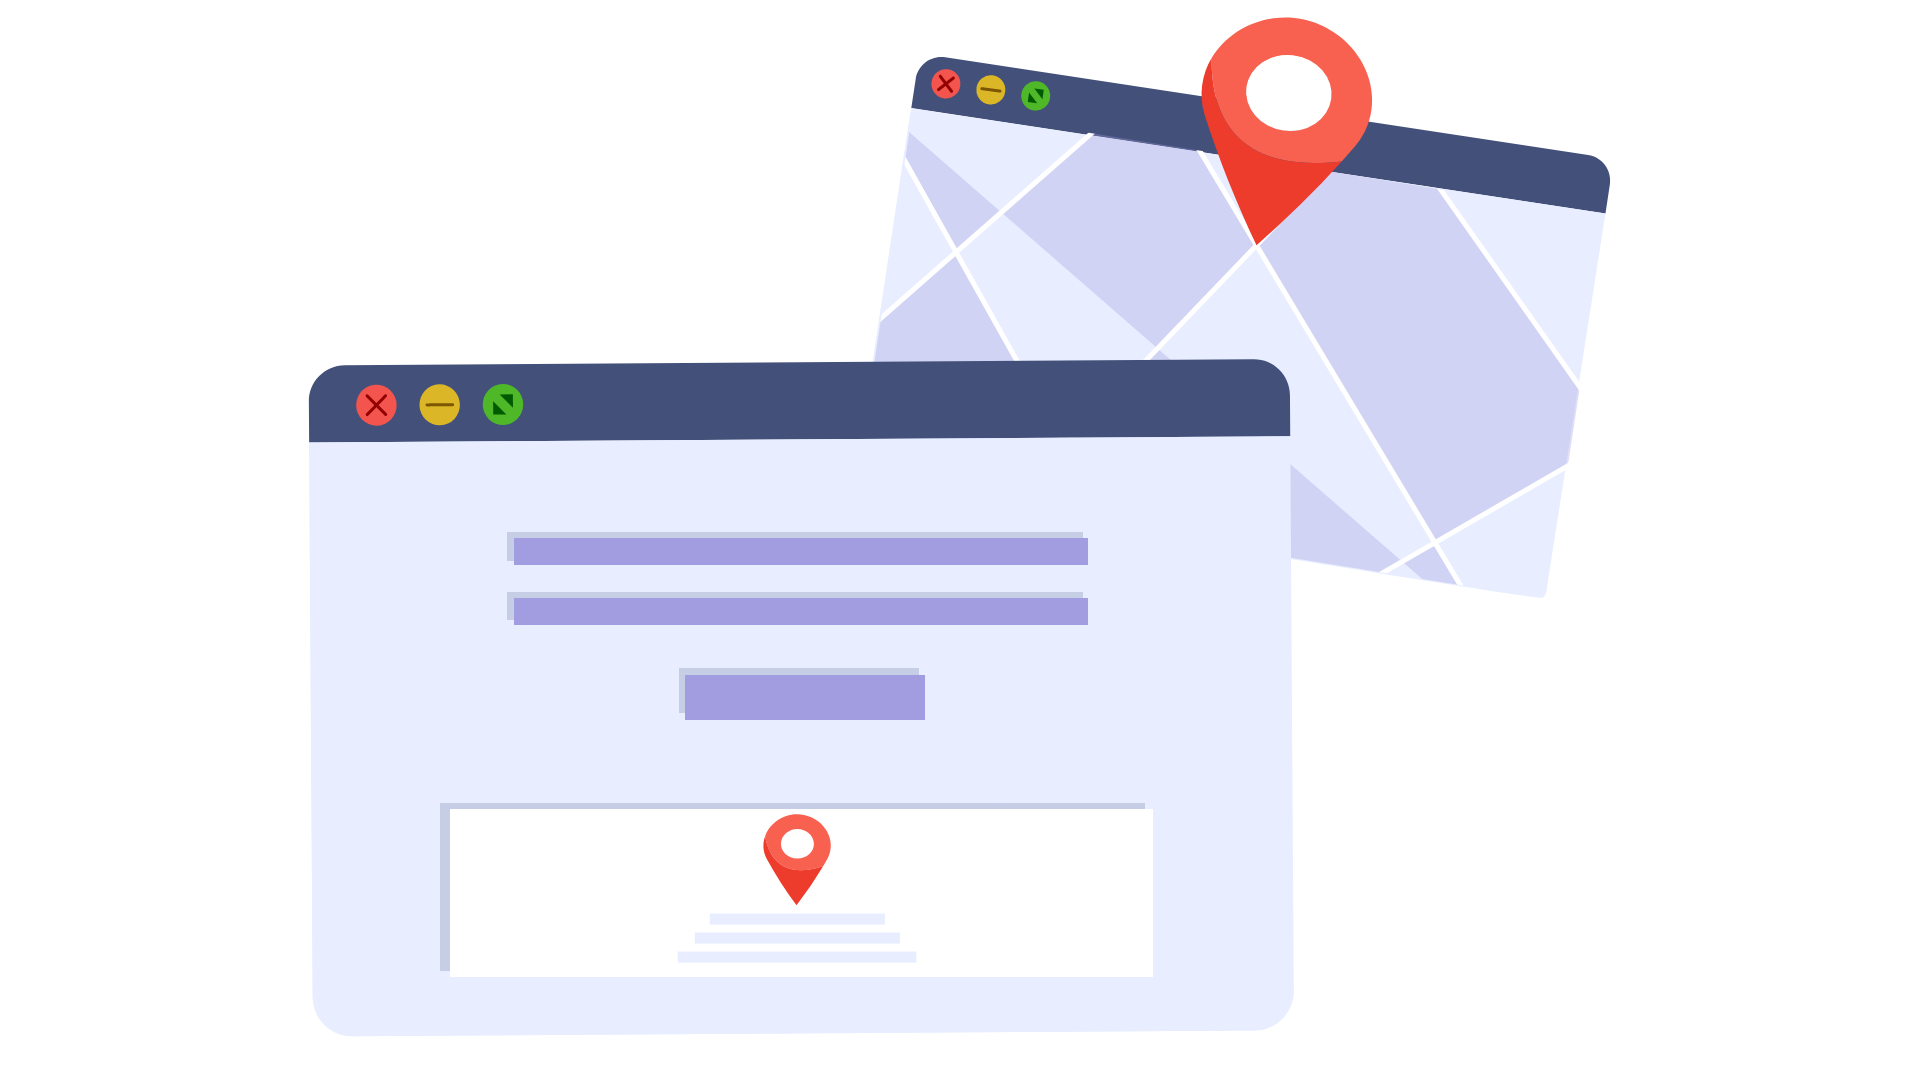 A landing page with company info and location in footer and a map with location pin. Illustration.